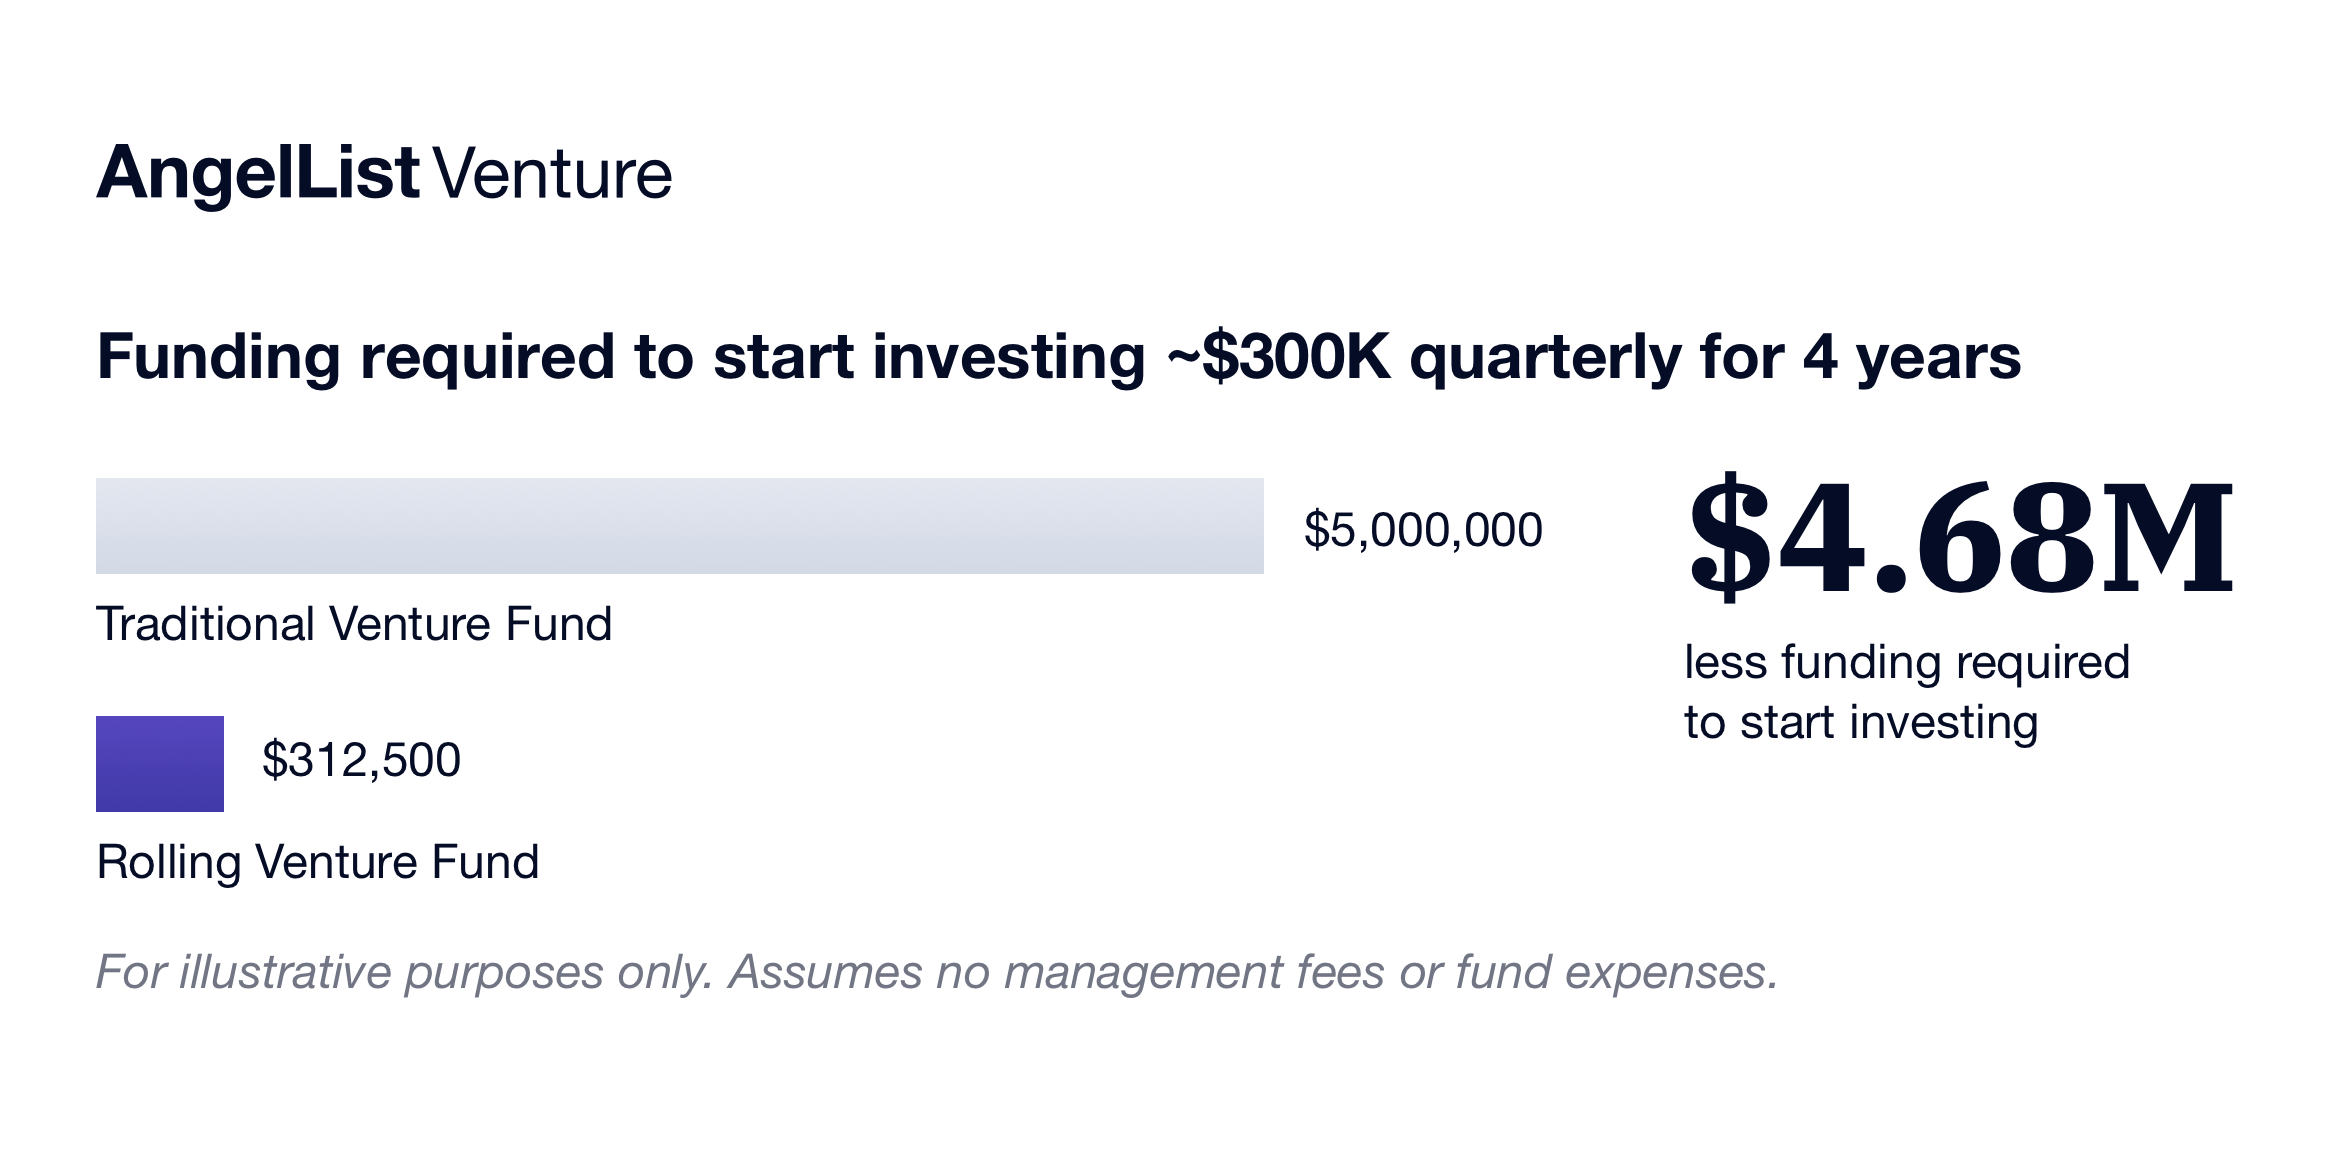 for-blog-angellist-venture-funding-required-traditional-versus-rolling-fund@2x